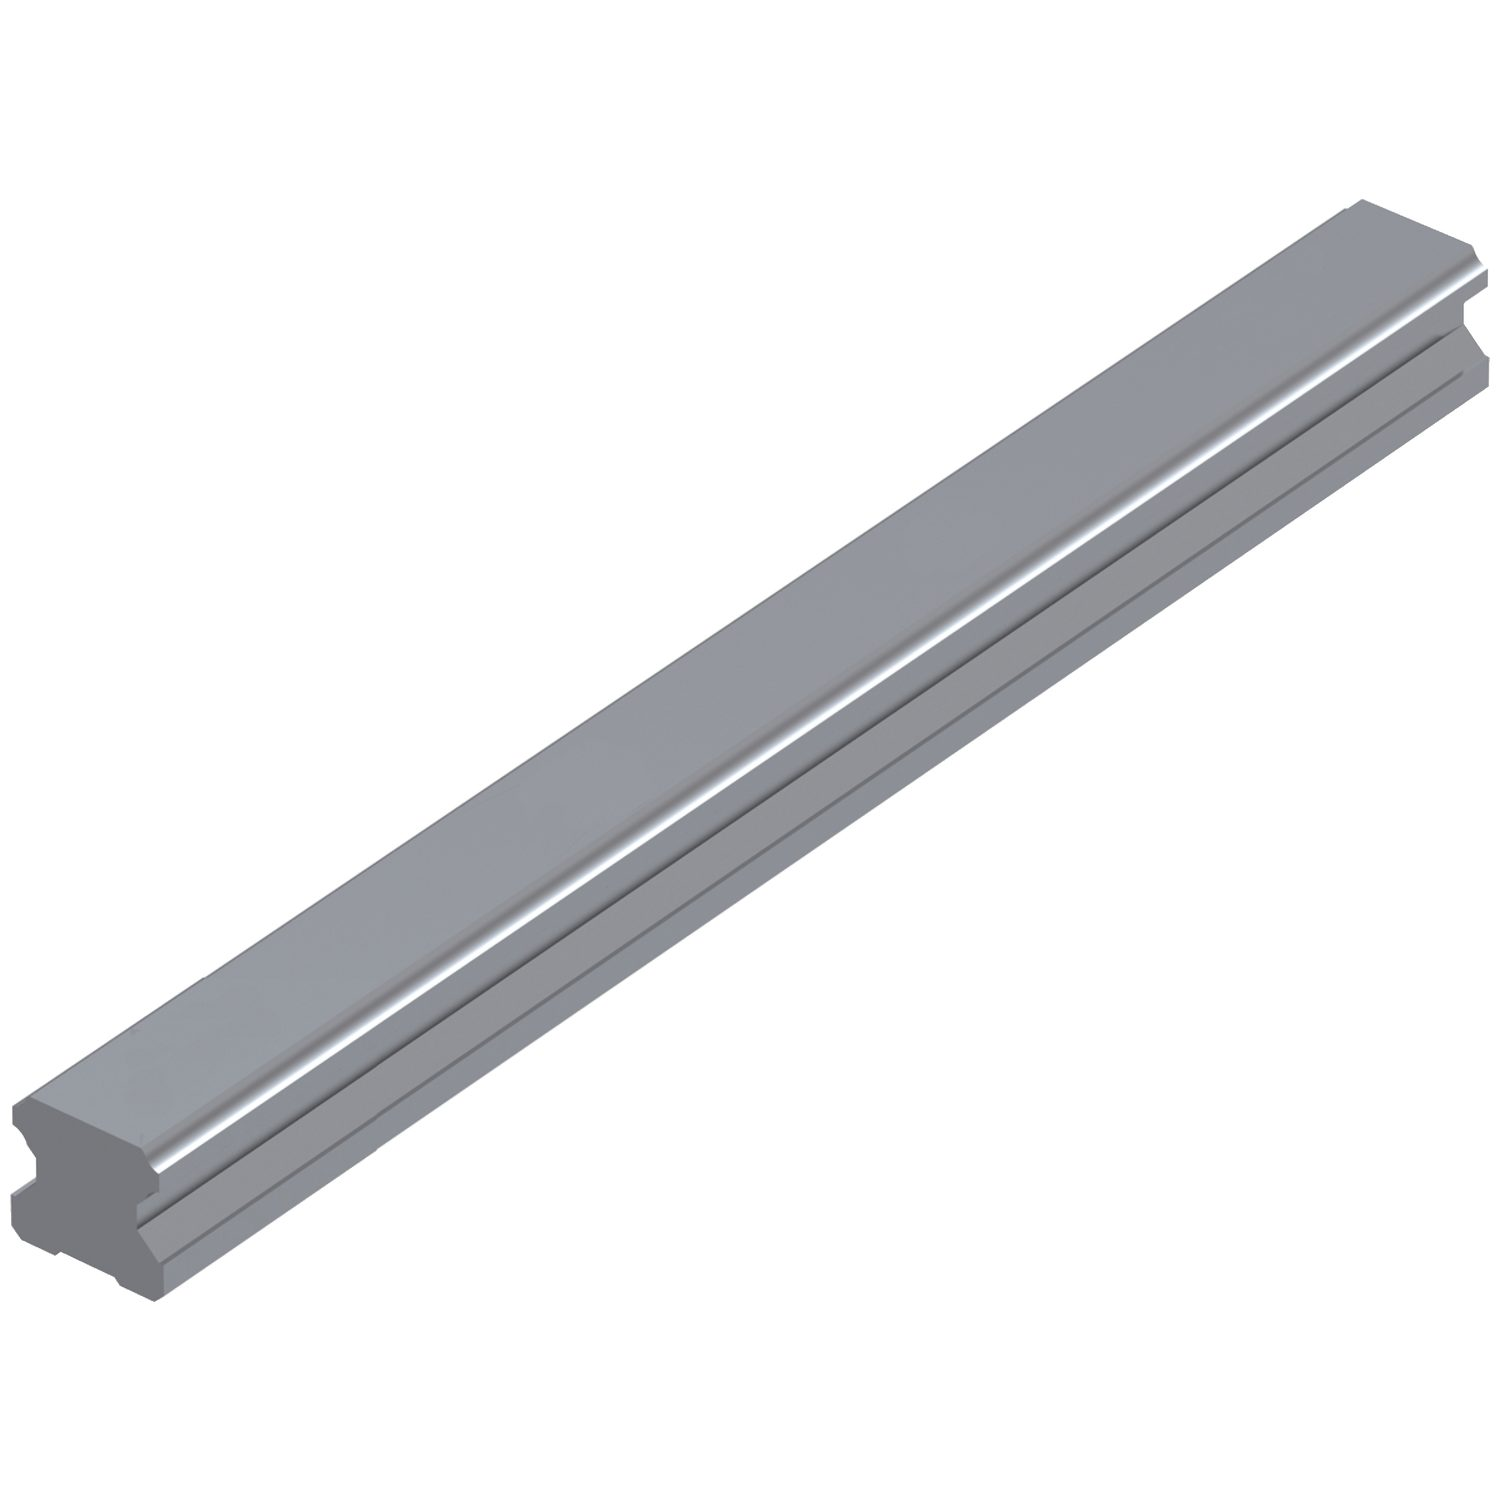 L1016.RF - 45mm Linear Guide Rail